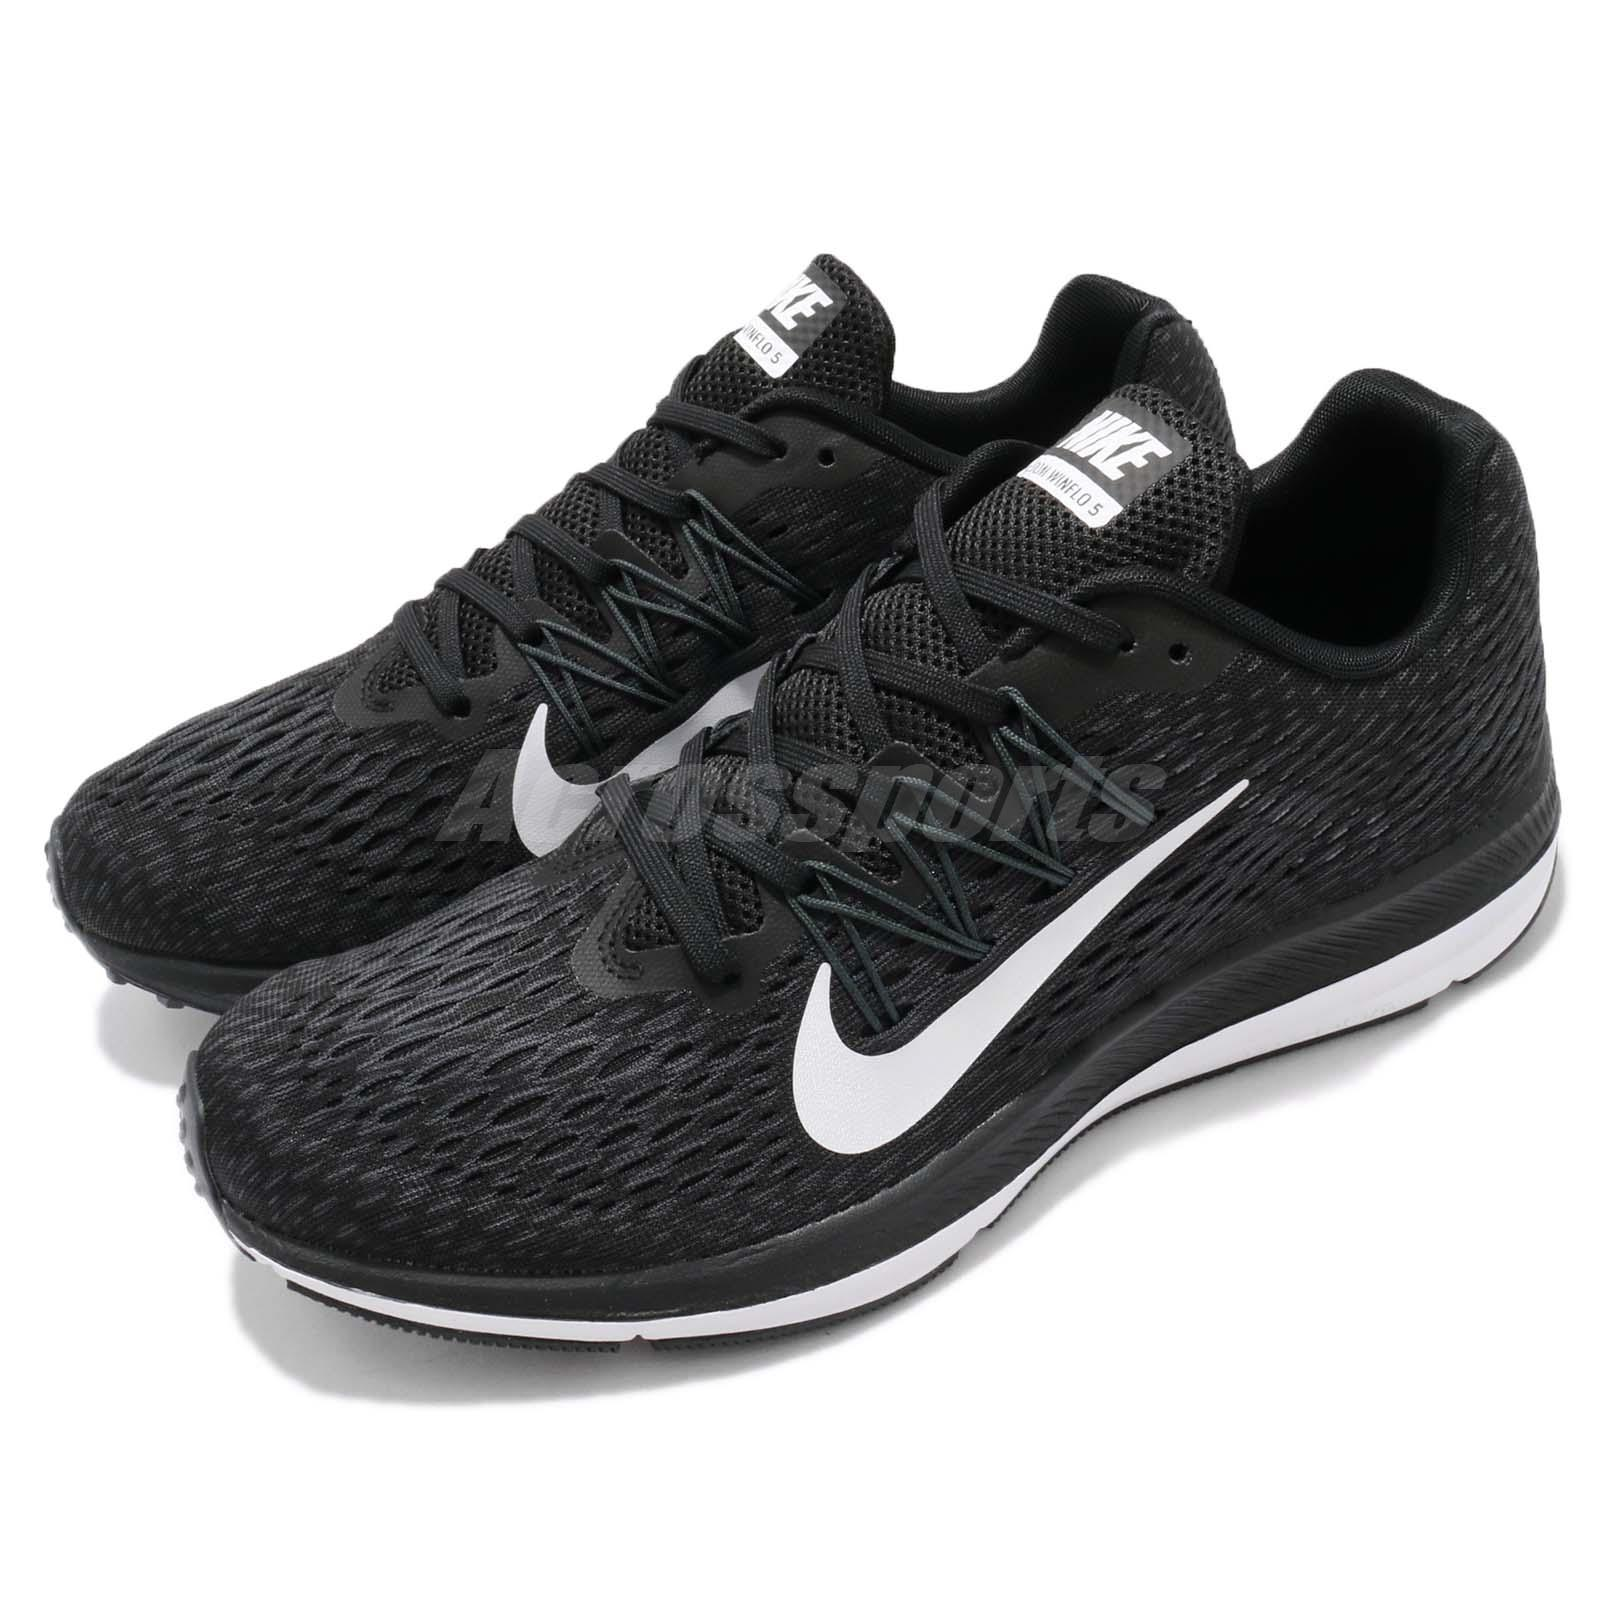 6779cc764d3 Details about Nike Zoom Winflo 5 V Black White Men Running Shoes Sneakers  AA7406-001